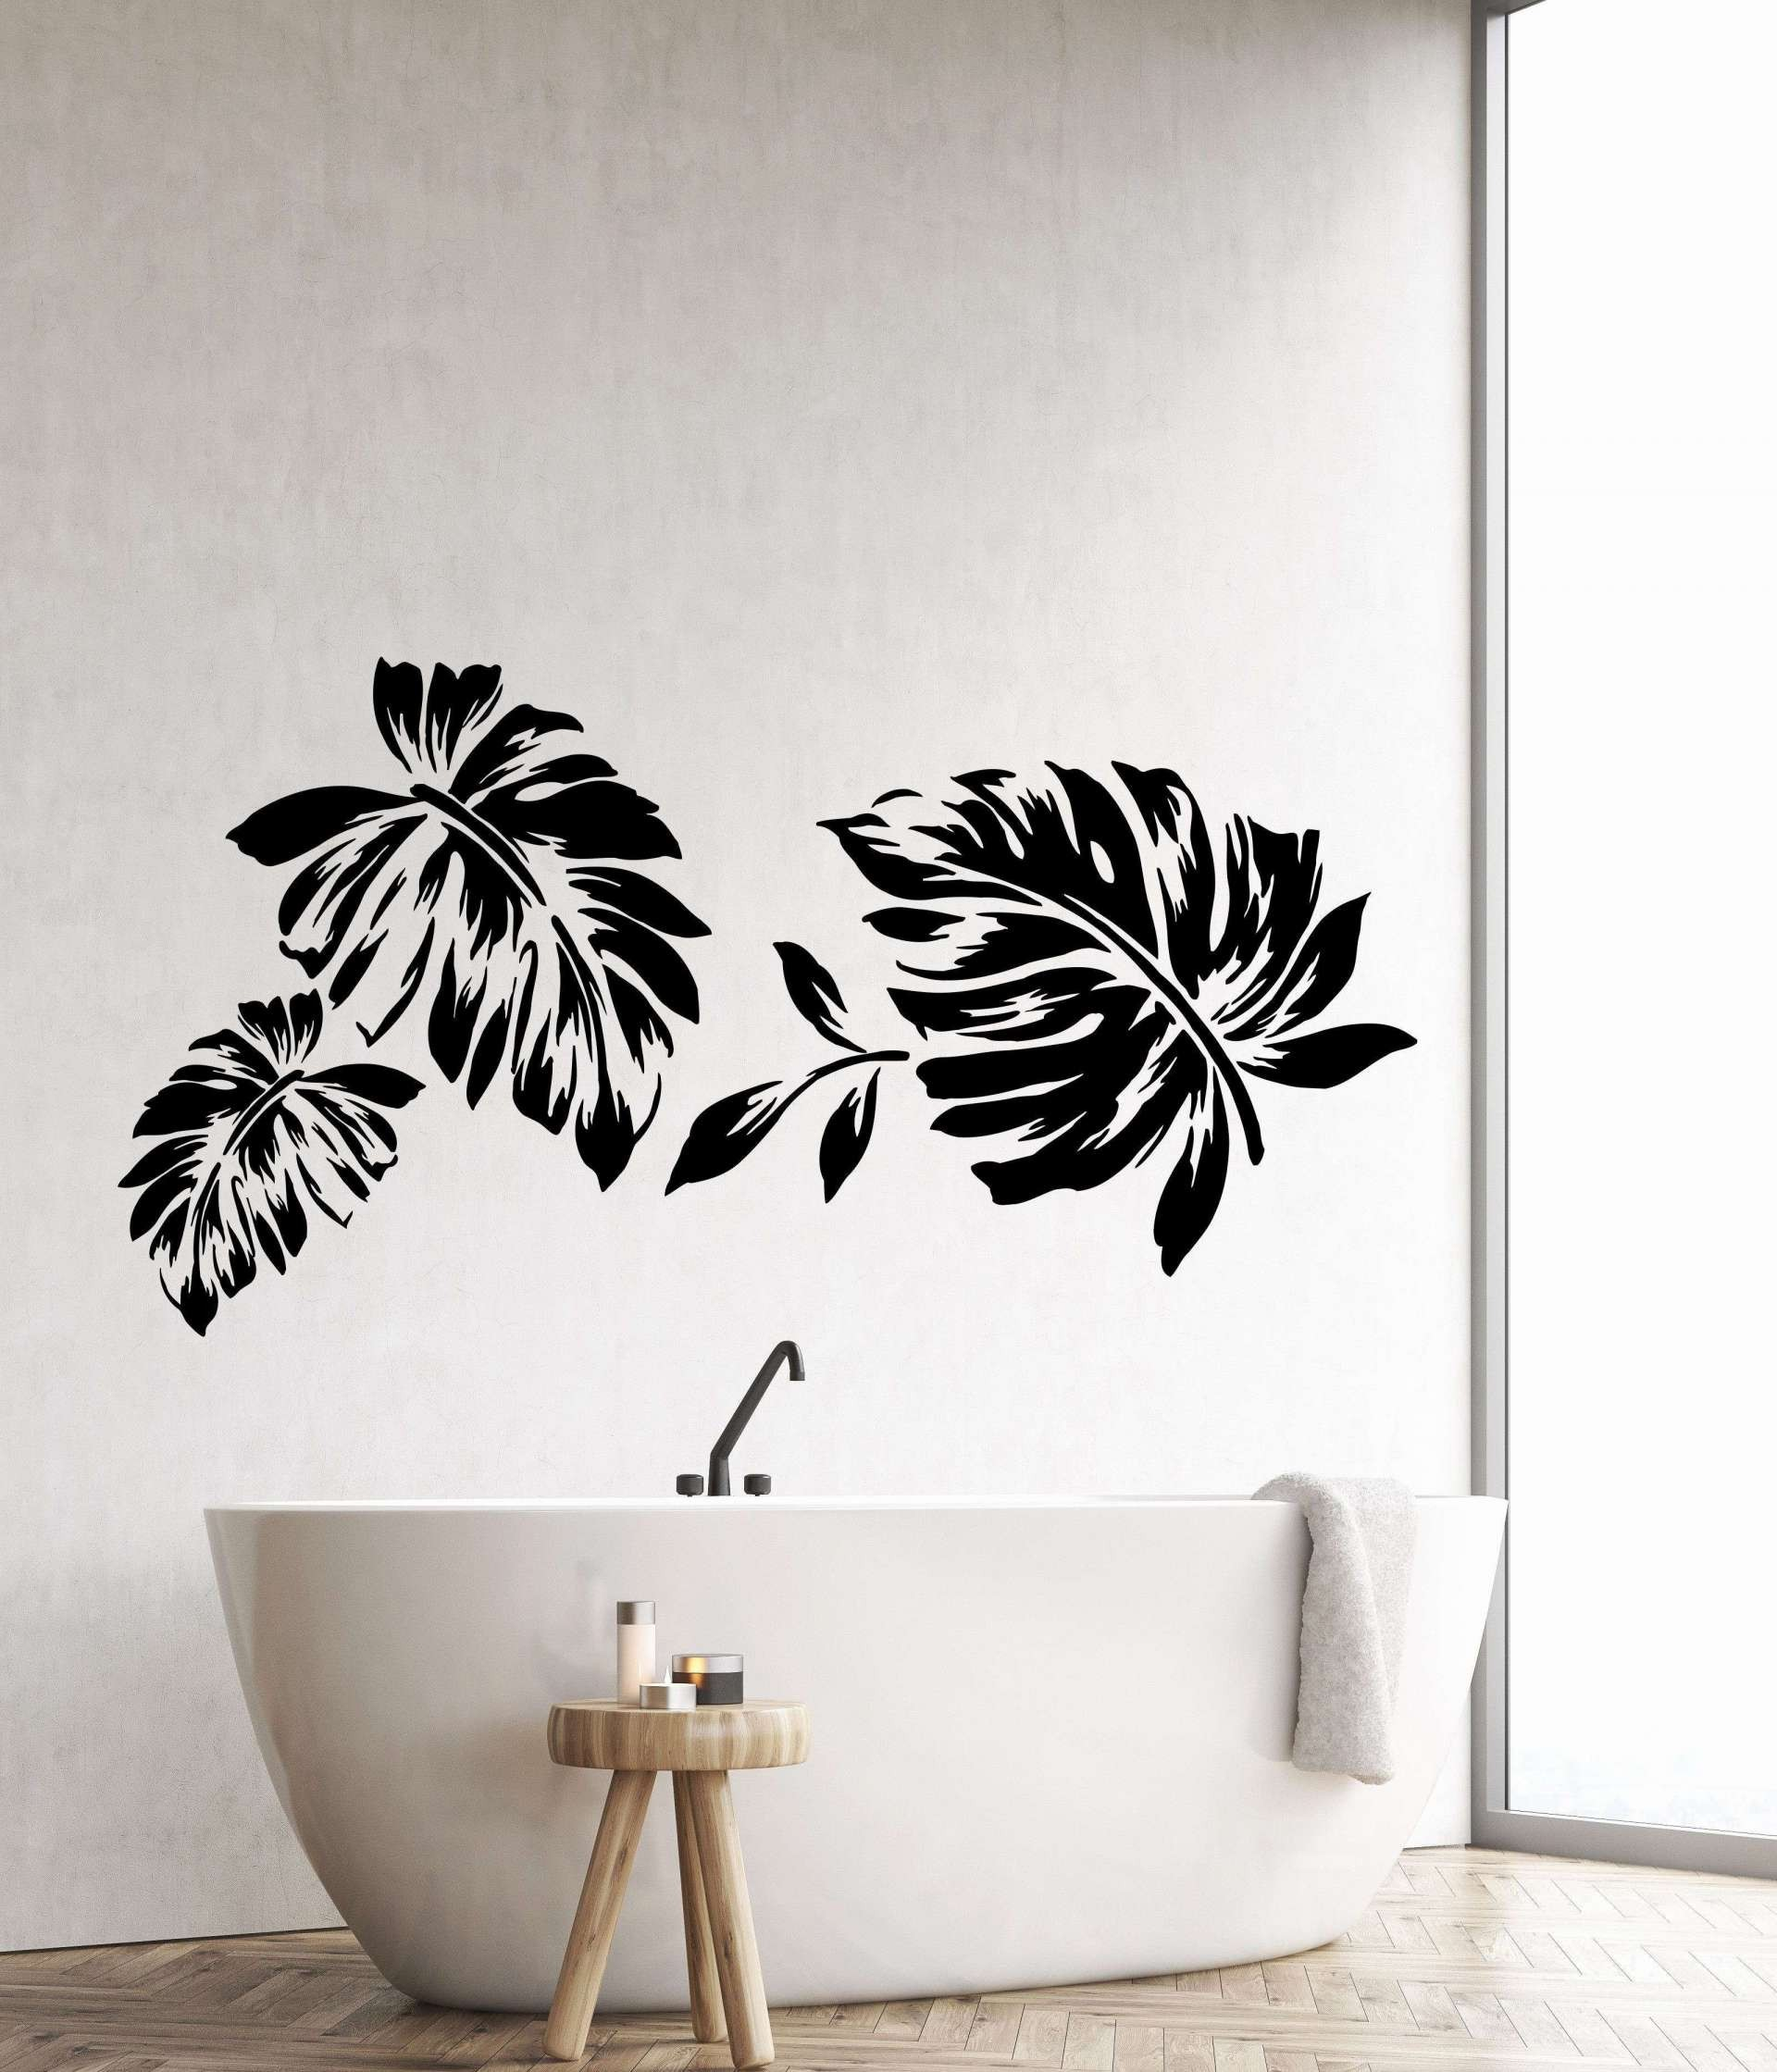 Kitchen Wall Decoration Ideas Simple Wall Decals For Bedroom Unique 1 Kirkland Wall Decor Home Design 0d